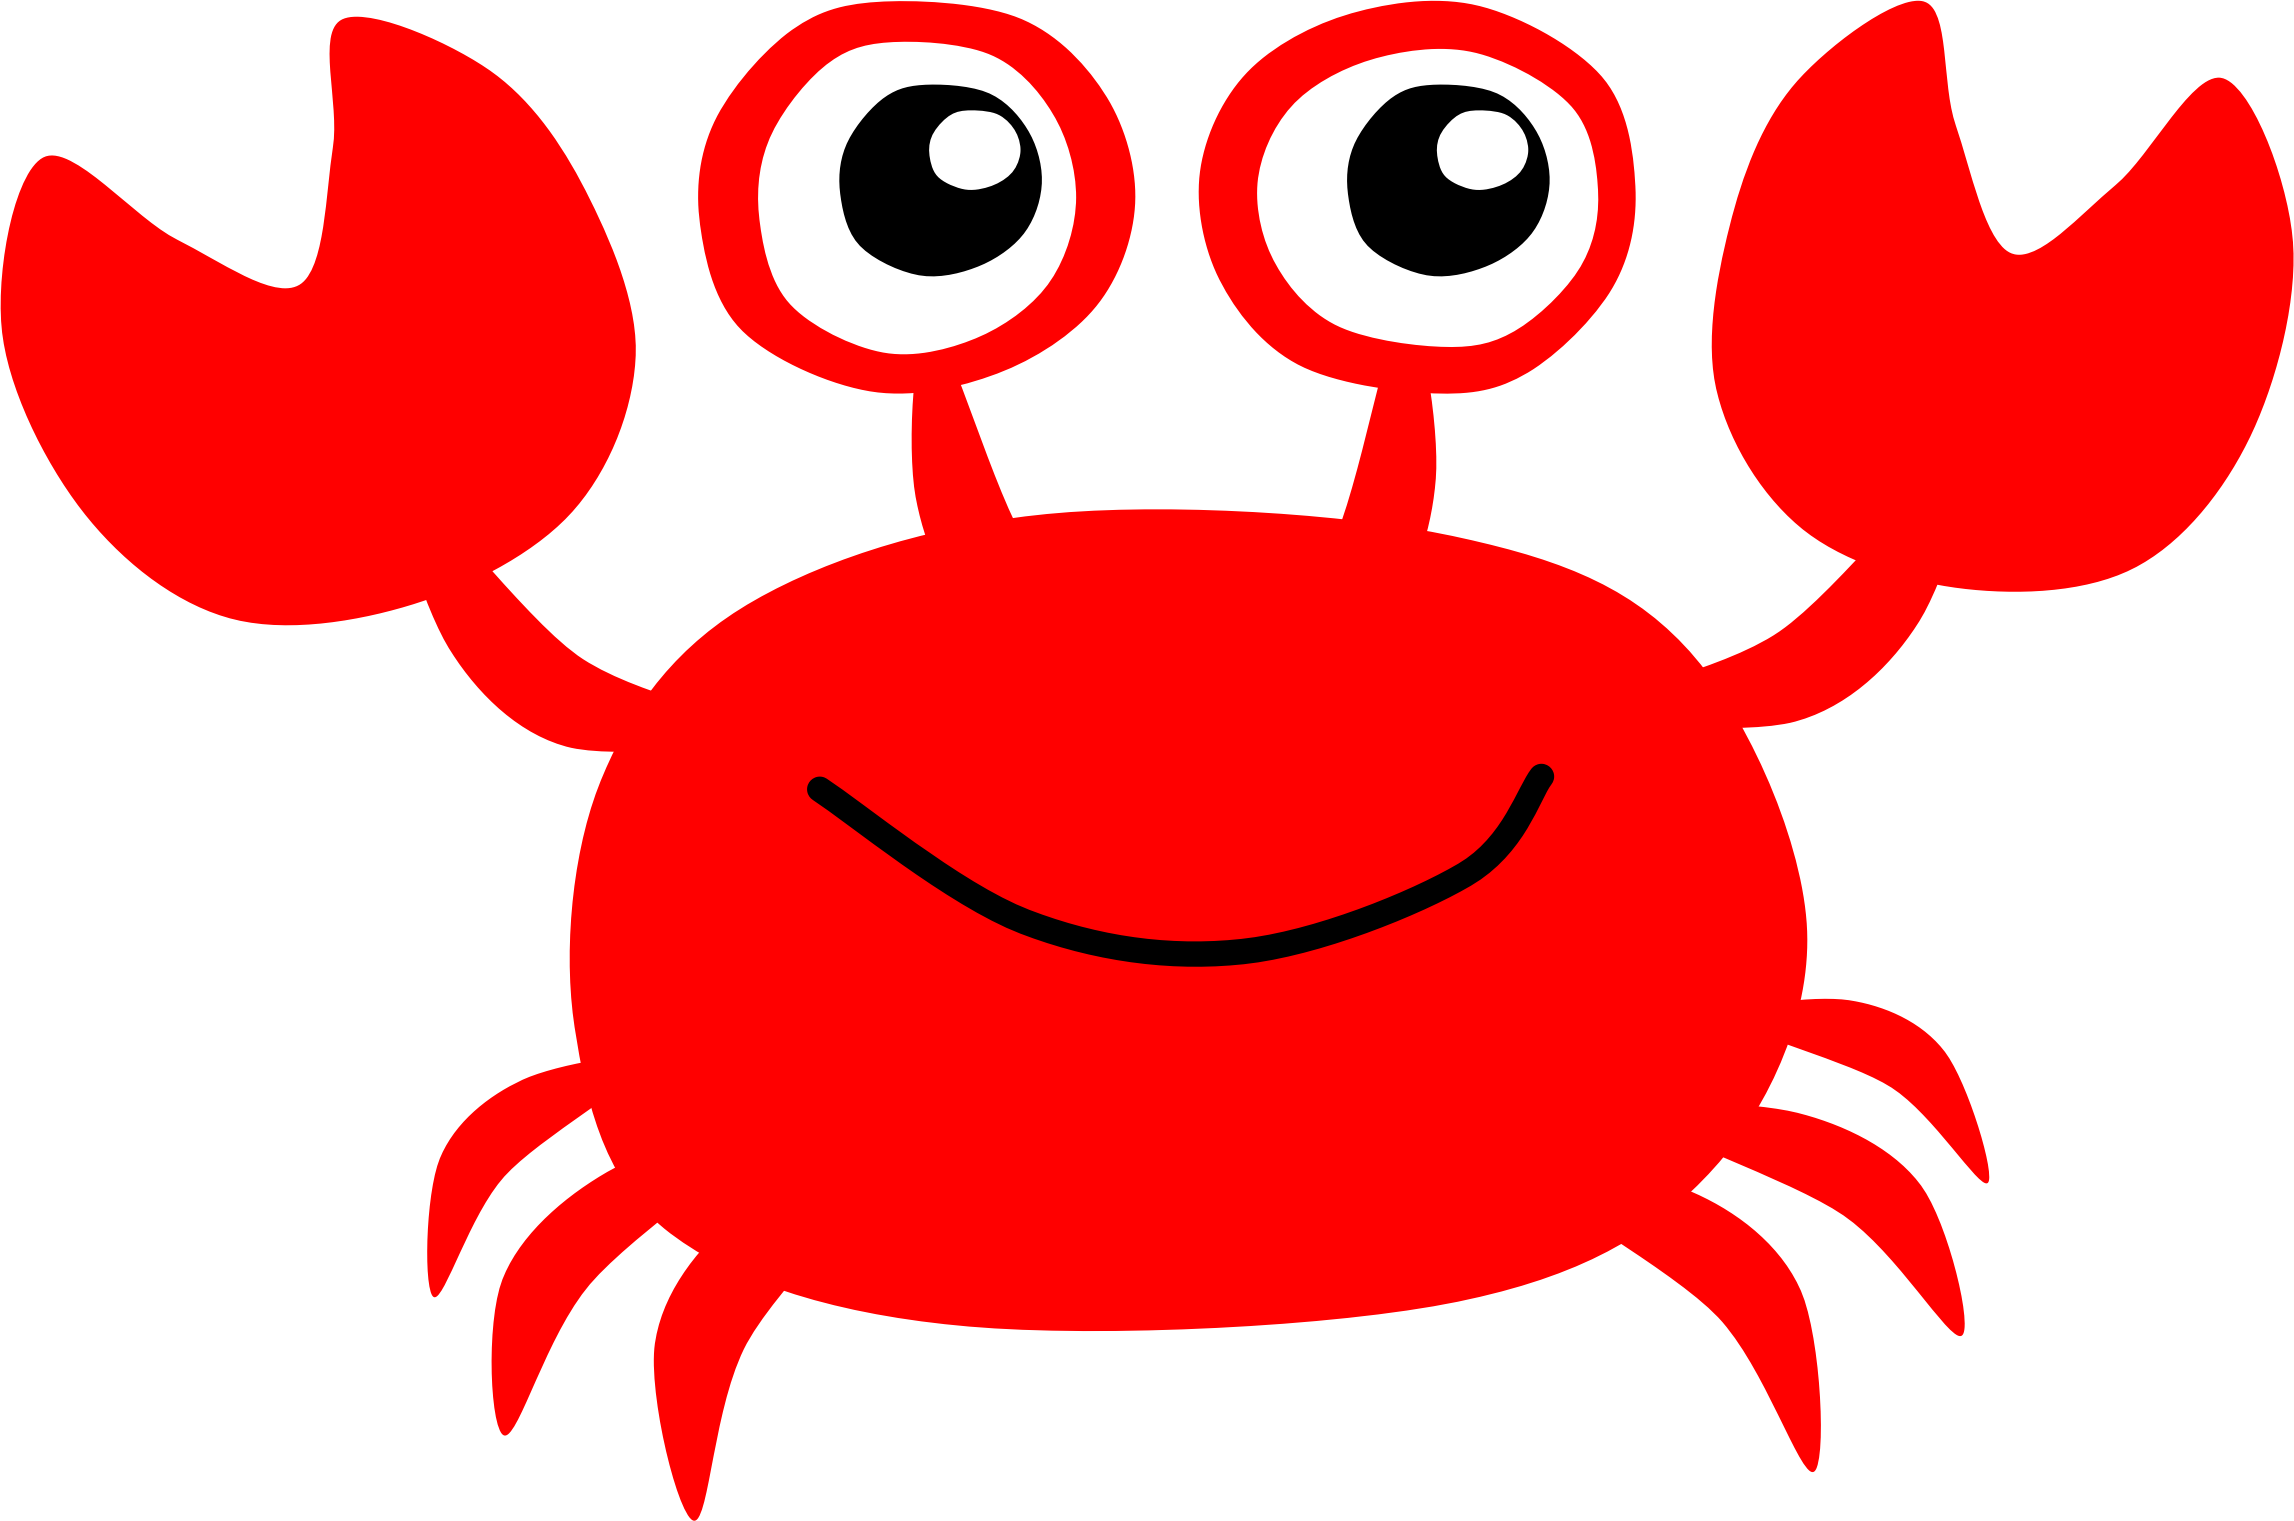 Crustacean clipart sea star Red Crab Crab Red Clipart